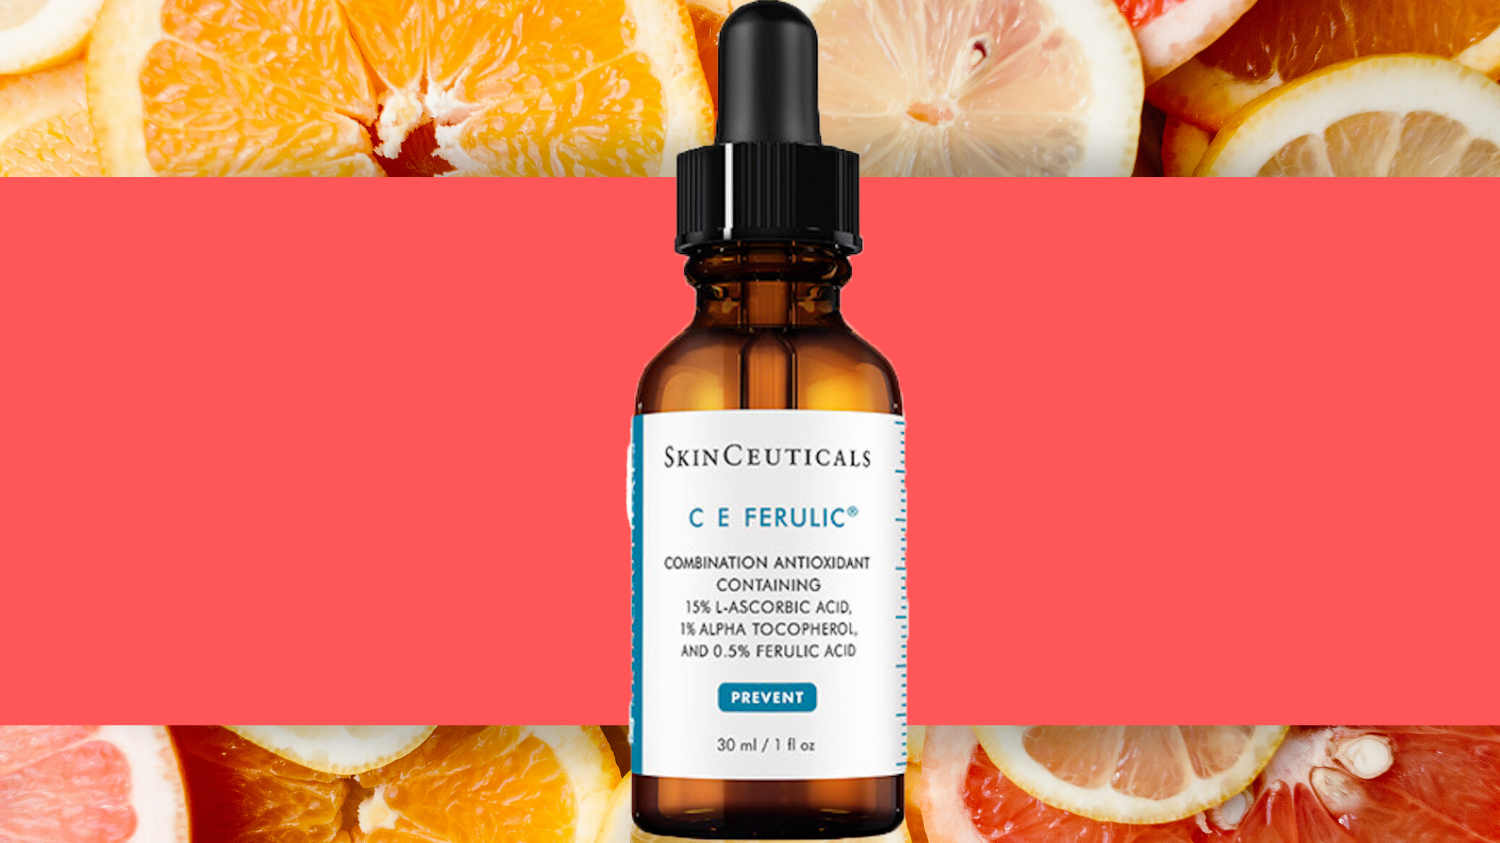 The Skinceuticals C E Ferulic Serum That Changed My Mind About Botox